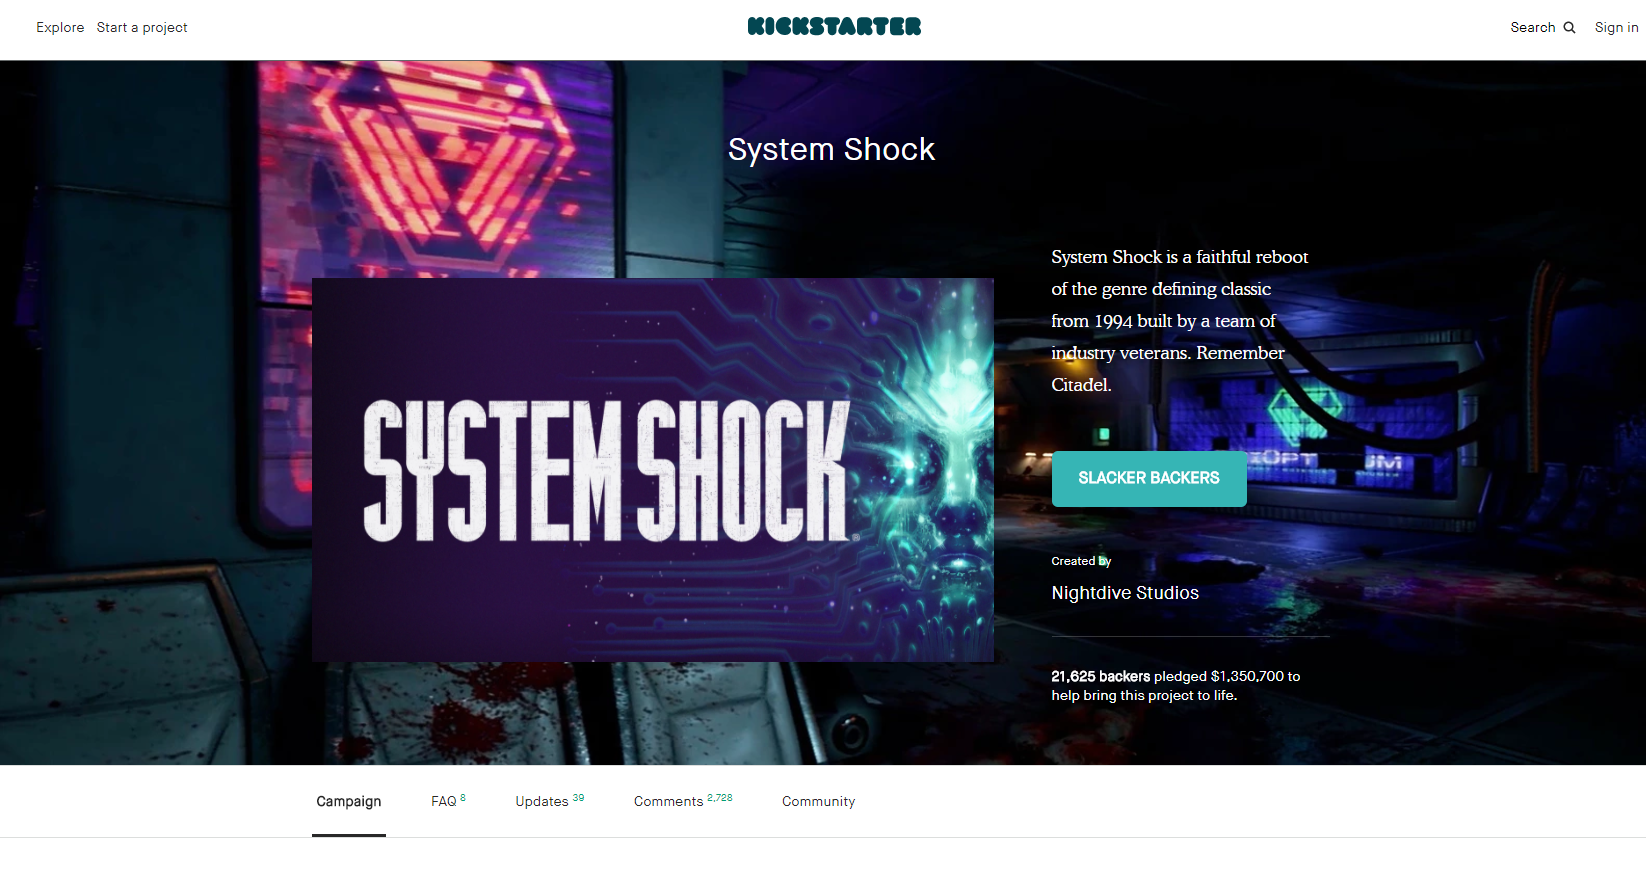 What happened to the crowdfunded reboot of System Shock?